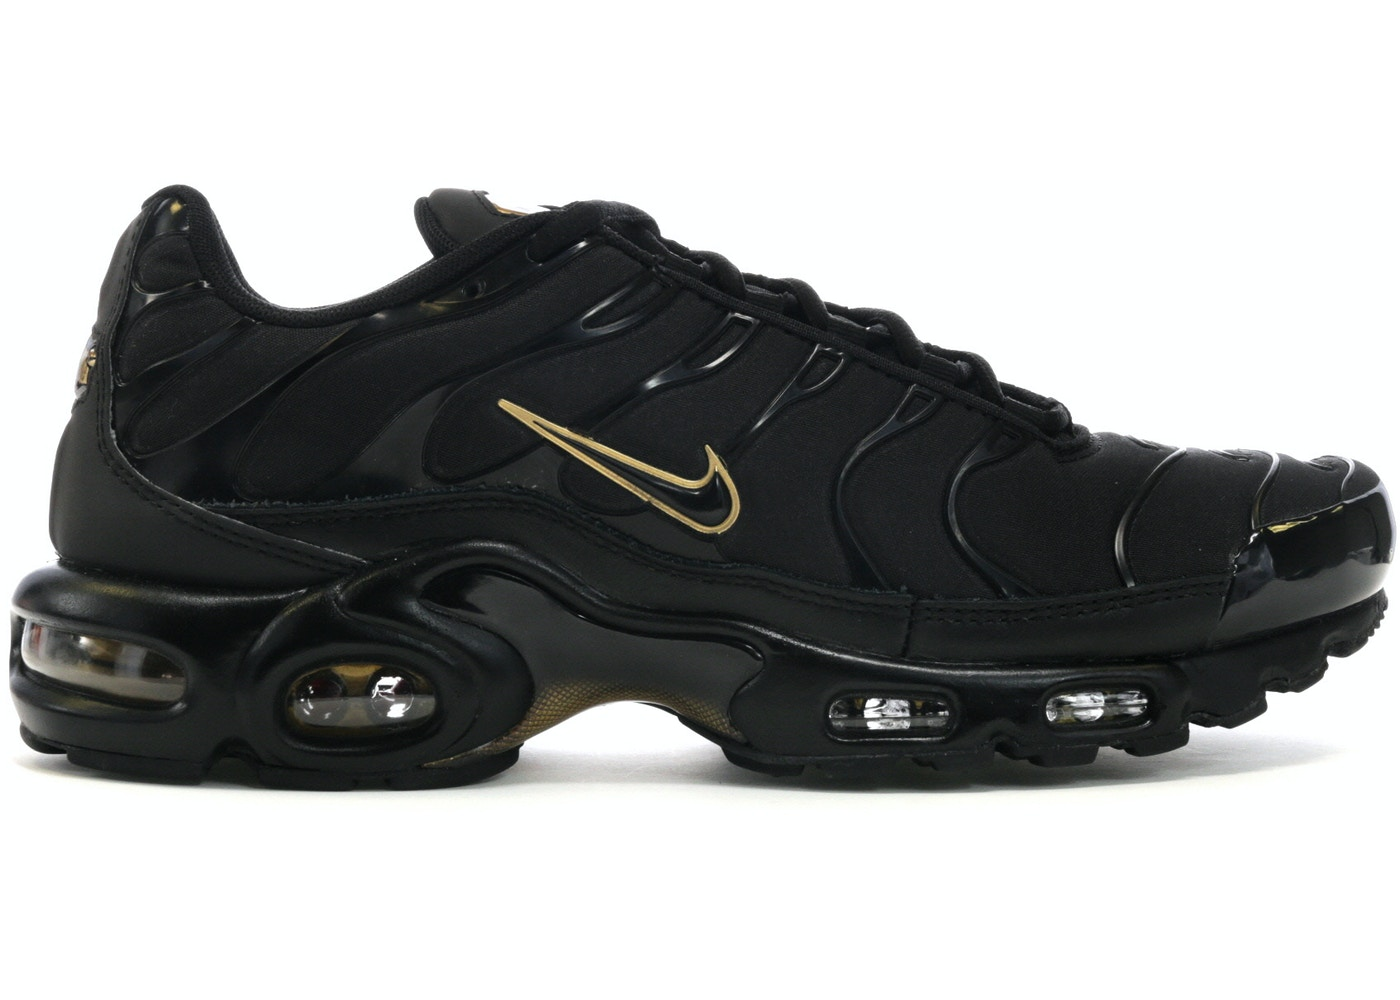 release date 4faf3 cbd38 Air Max Plus Black Metallic Gold - 852630-024